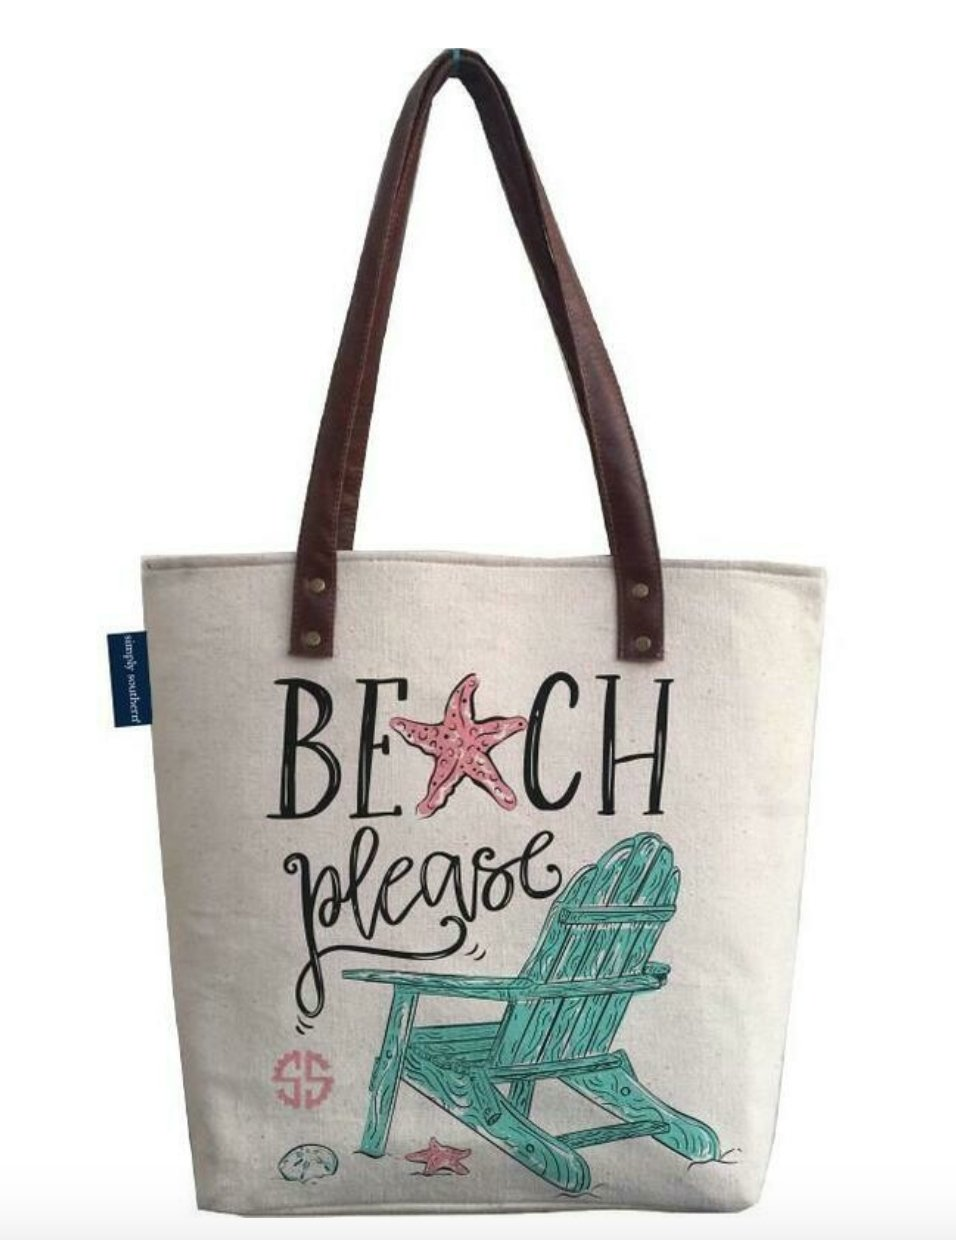 CANVAS TOTE BAG: BEACH PLEASE - Molly's! A Chic and Unique Boutique